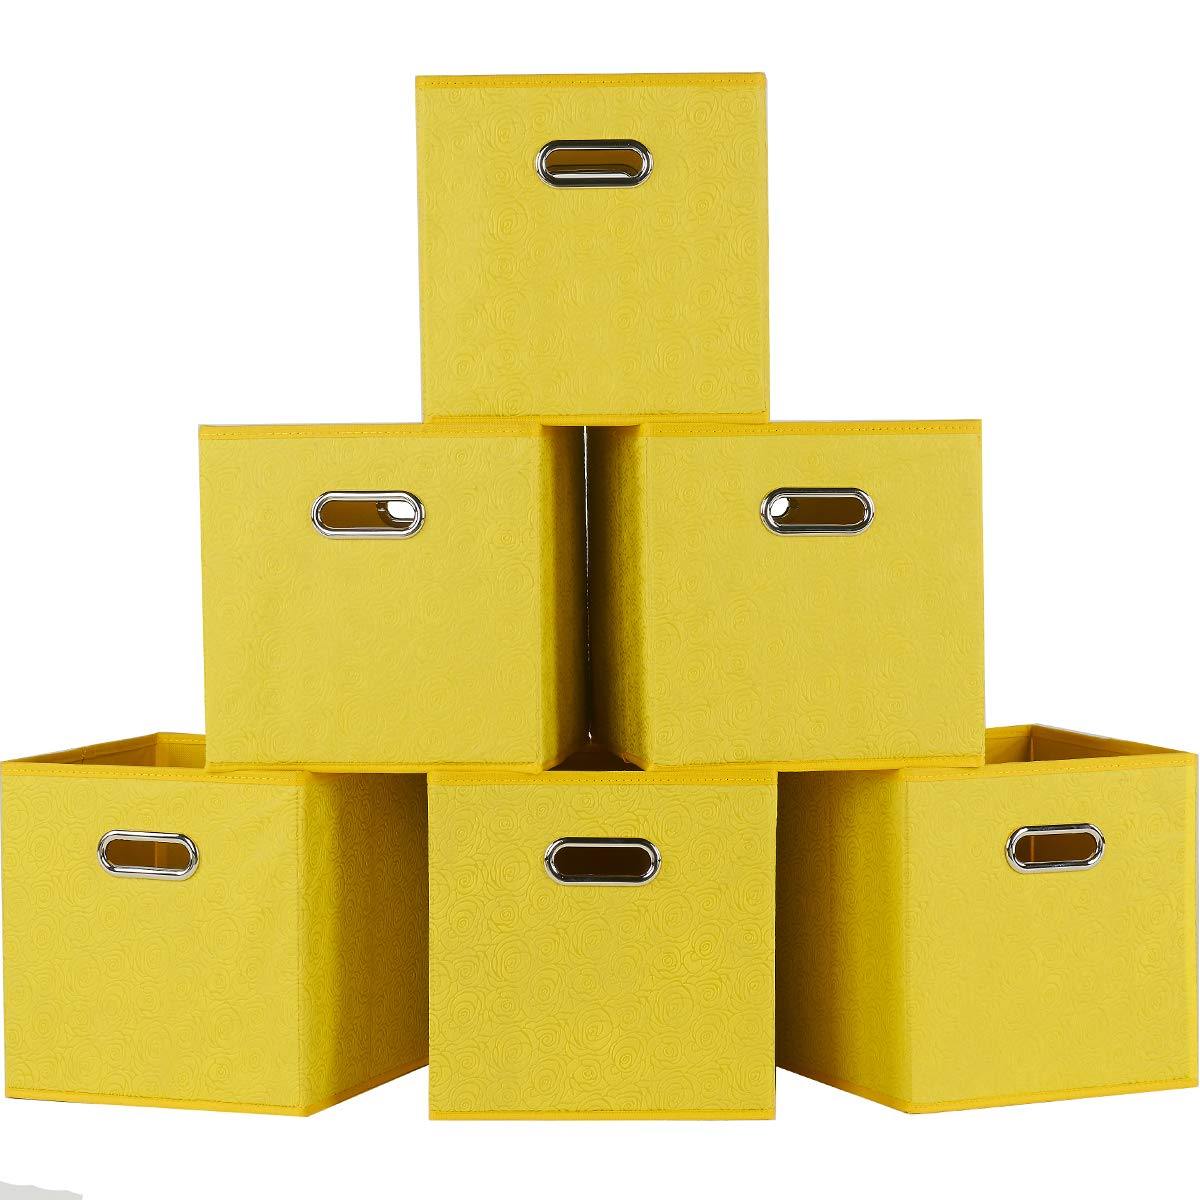 SHACO Durable Double Metal Handle Cloth Storage Cubes, Embossed with Rose Print Yellow Foldable Cube Fabric Drawer(6 Packs)